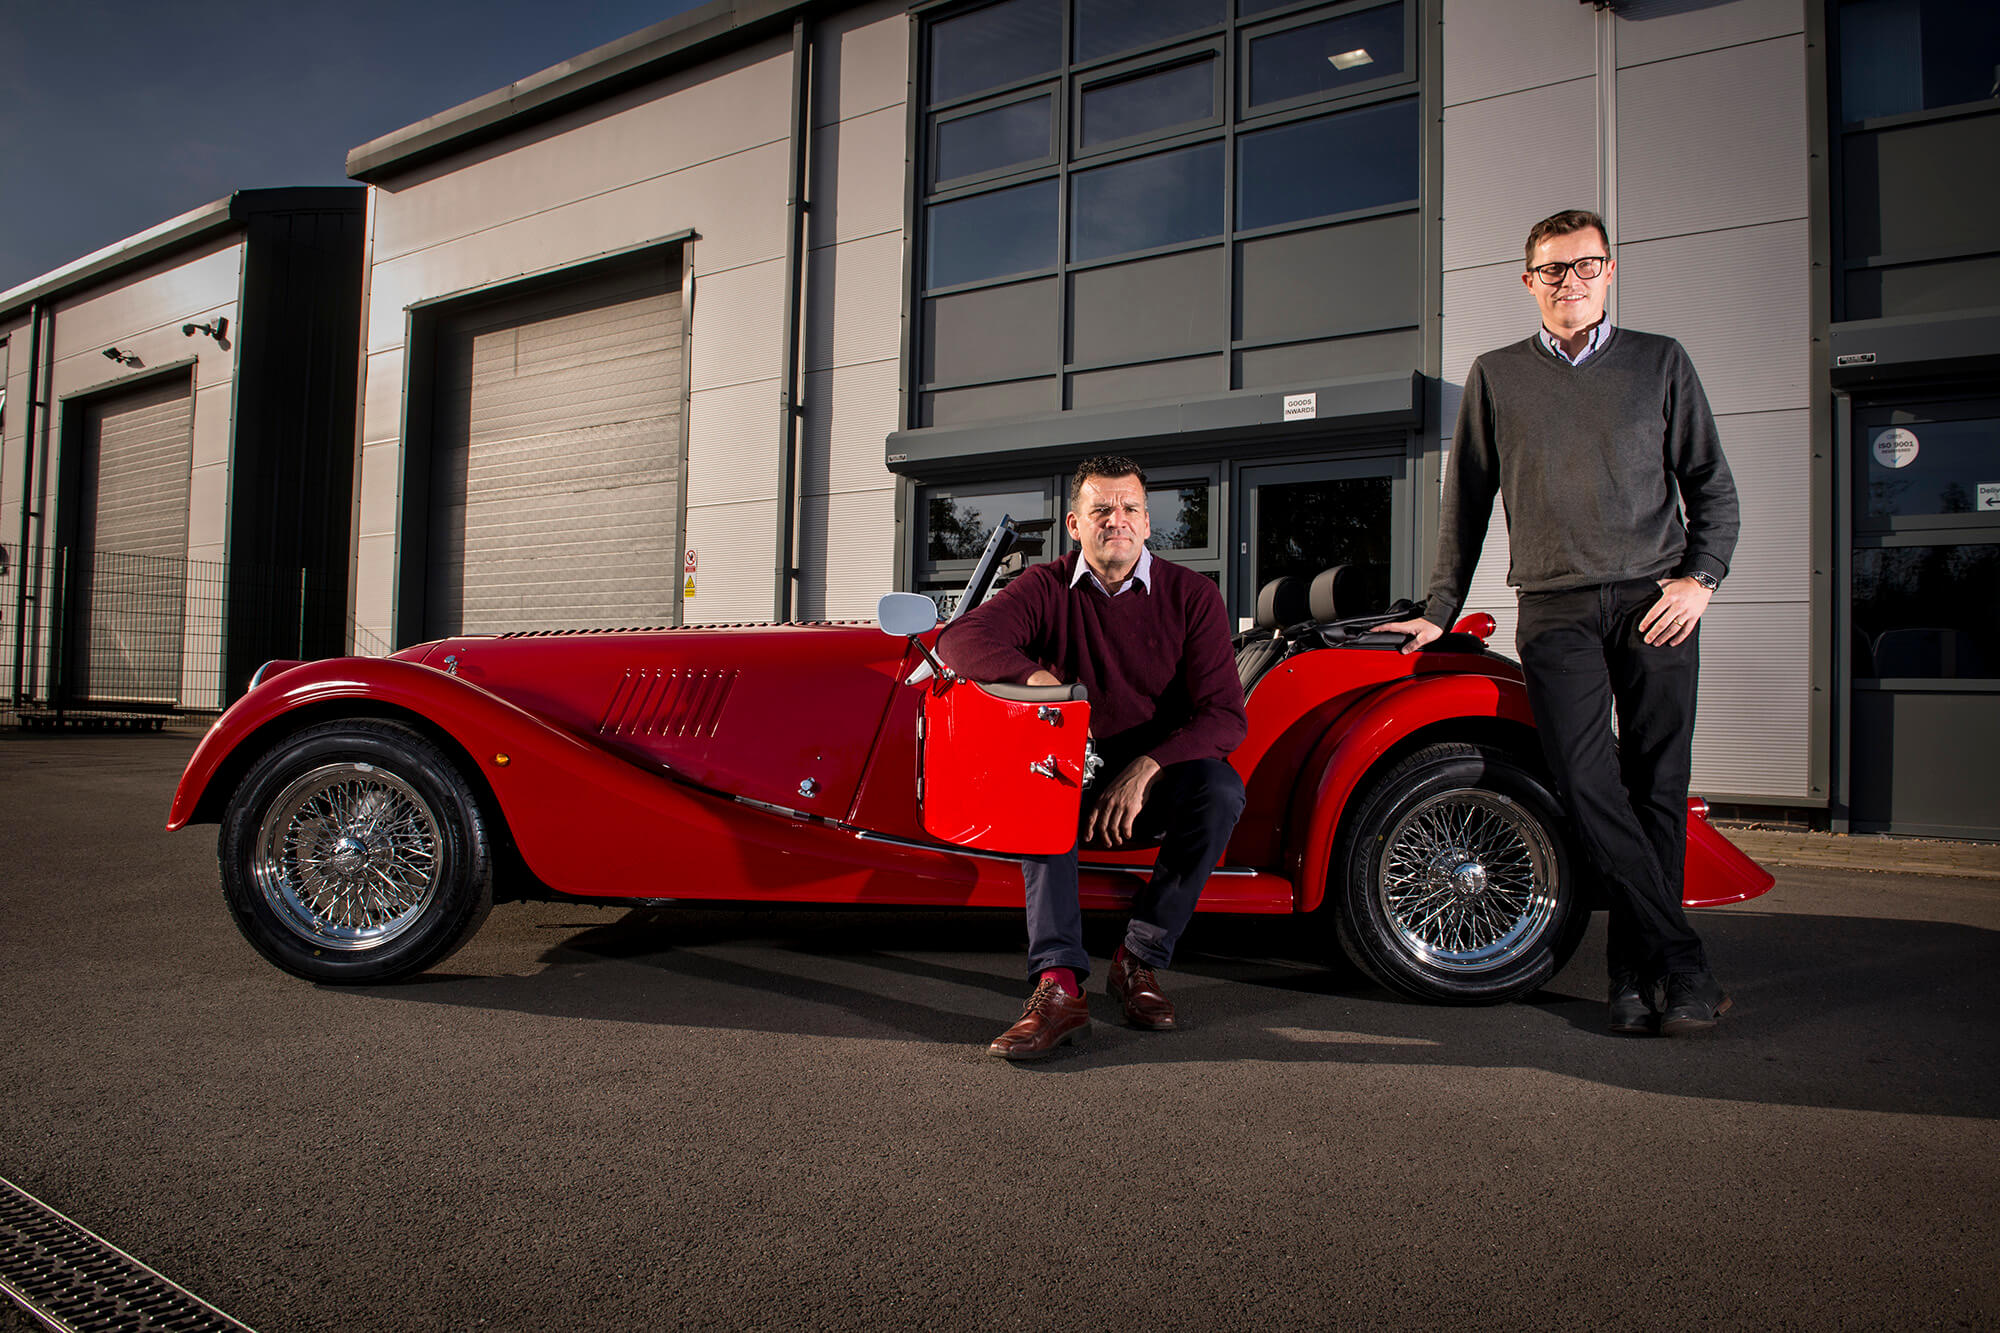 Two Vitesse staff stand next to and sit in a vintage open top red car